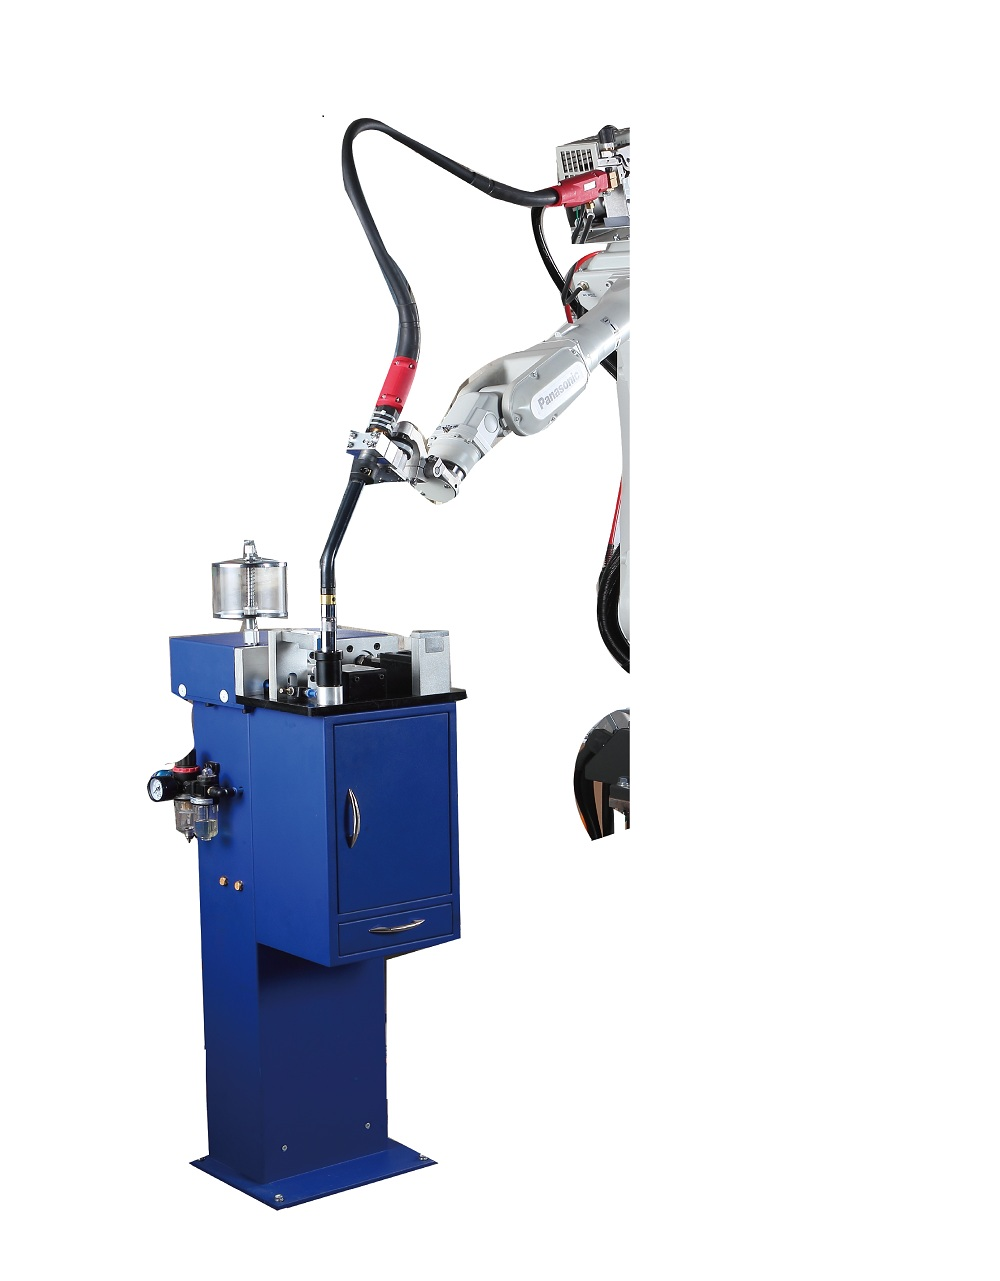 Automatic Cleaning Machine For Welding Gun